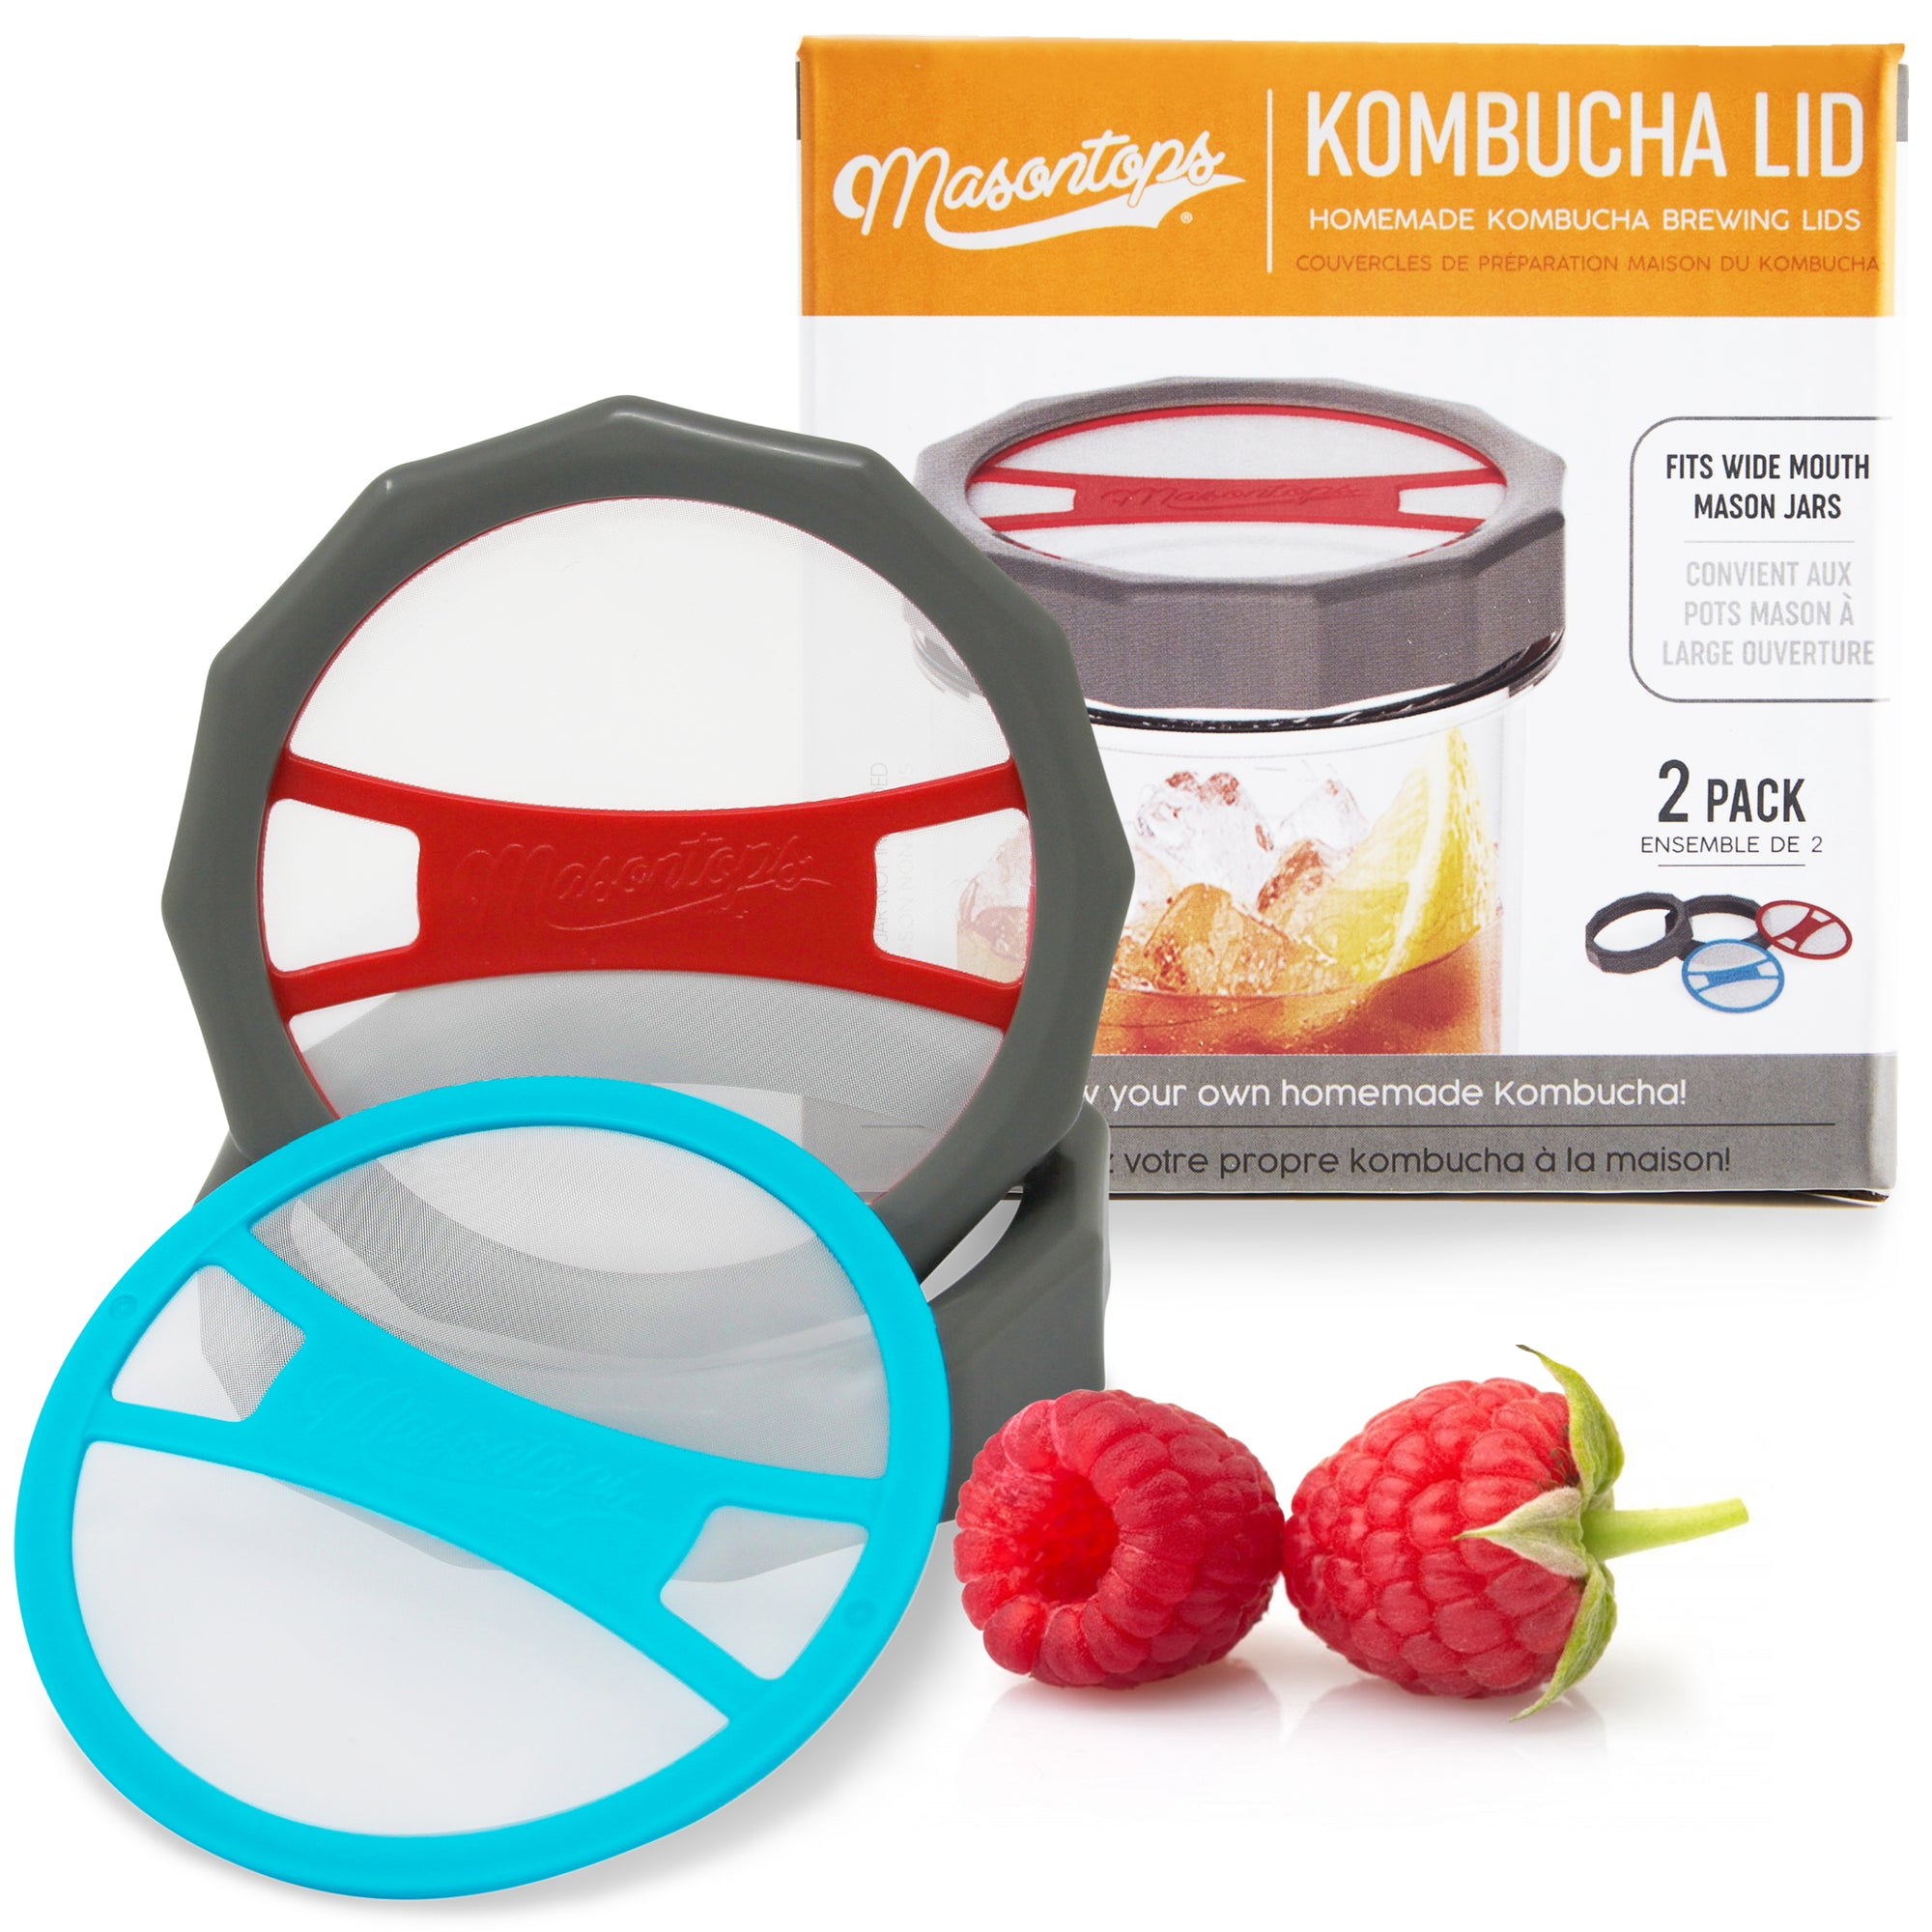 Kombucha Brewing Lids